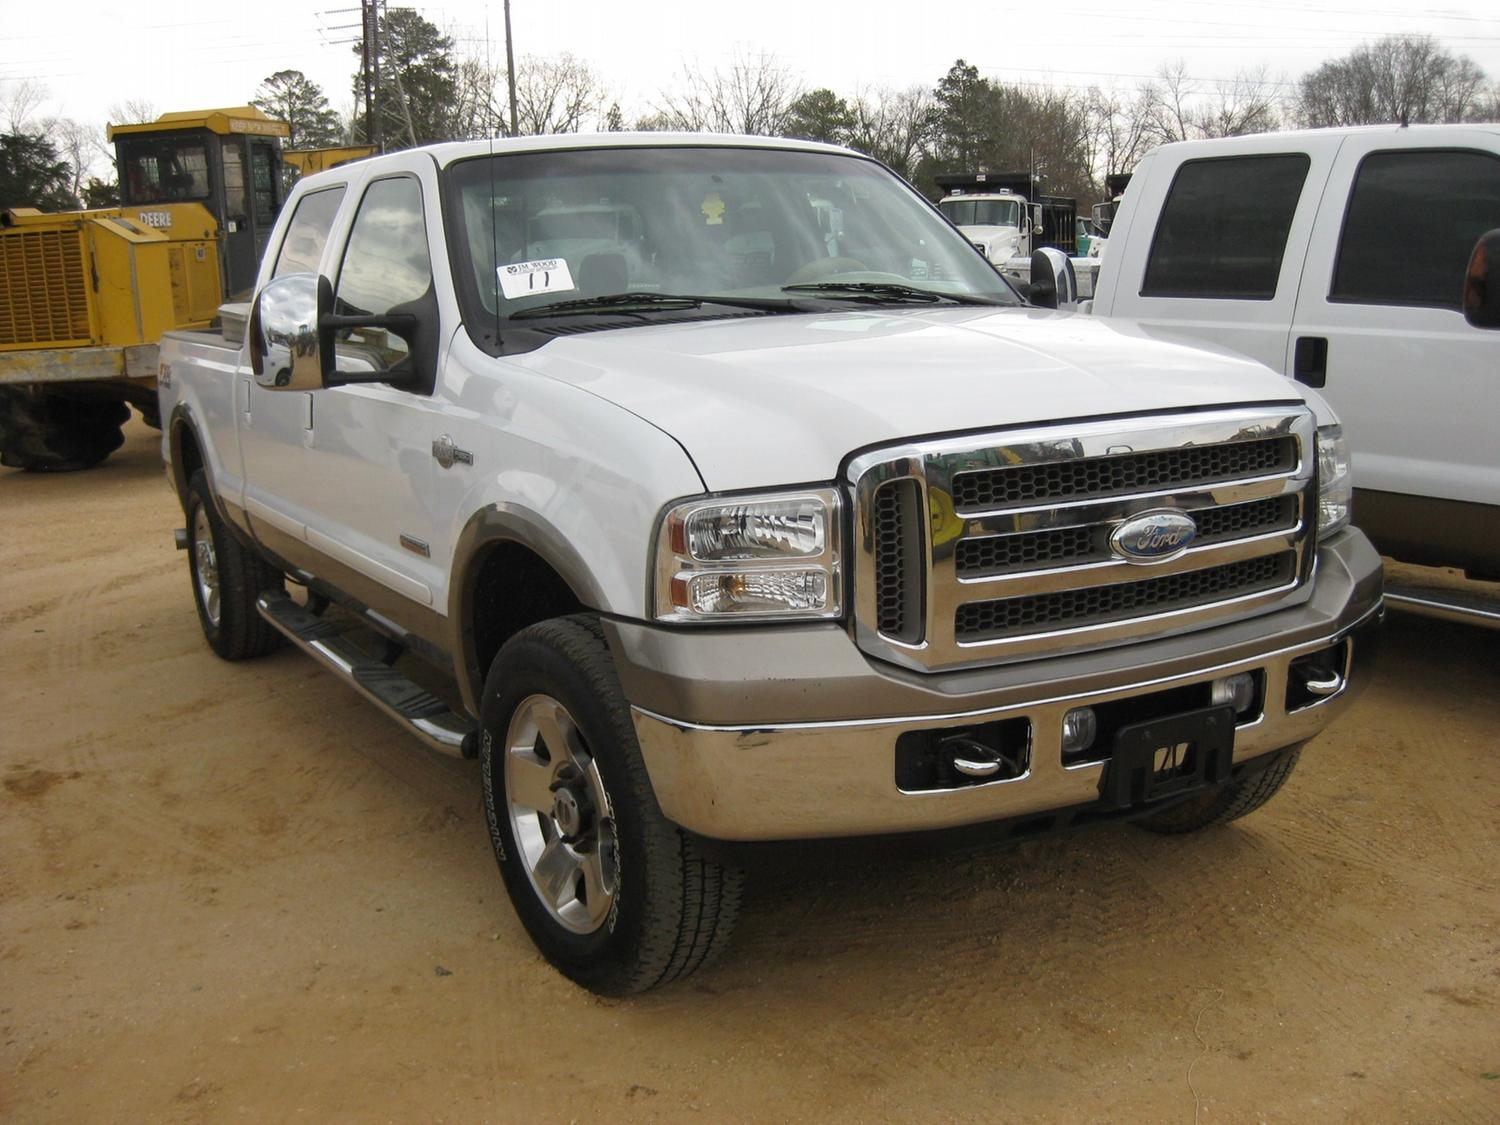 2006 ford f250 king ranch 4x4 crewcab j m wood auction company inc. Black Bedroom Furniture Sets. Home Design Ideas